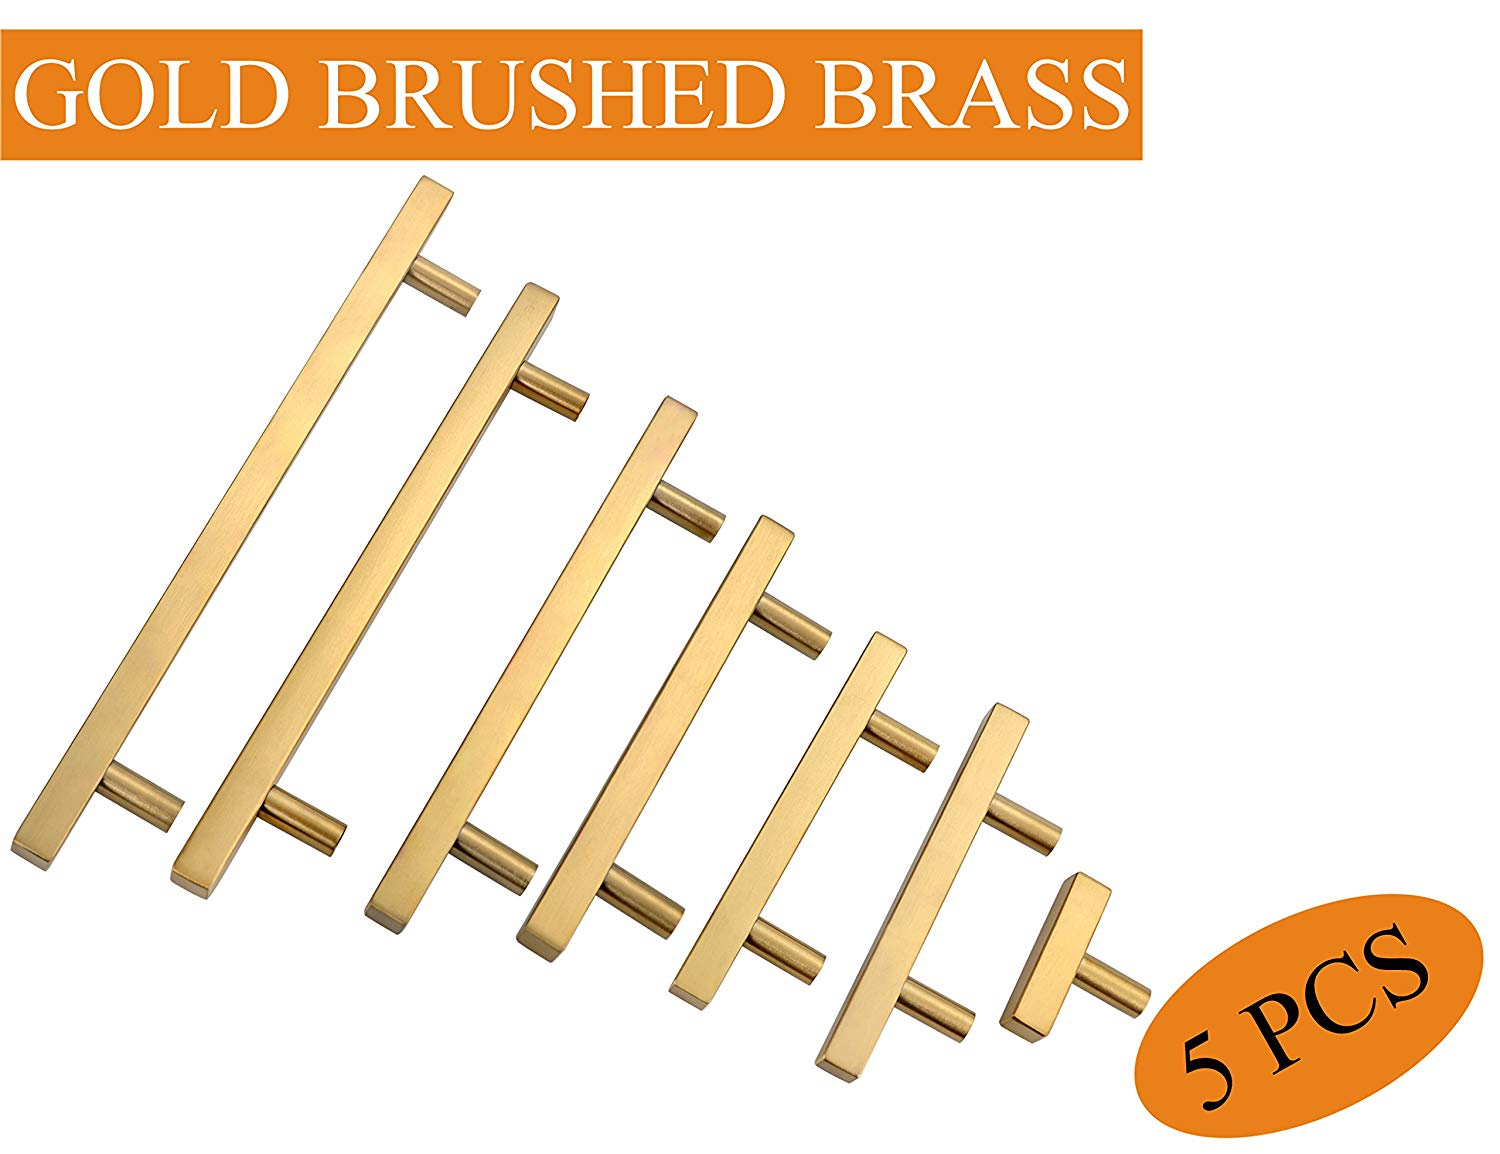 """Gold Kitchen Cabinet Handles:Hole Center 3""""Square Gold Furniture Pulls and Handles,Euro Style Bar Handle Pull Total Length 5inch Dresser Handles and knob 5 Pack,YTHD1212GD76-5PAMZ"""